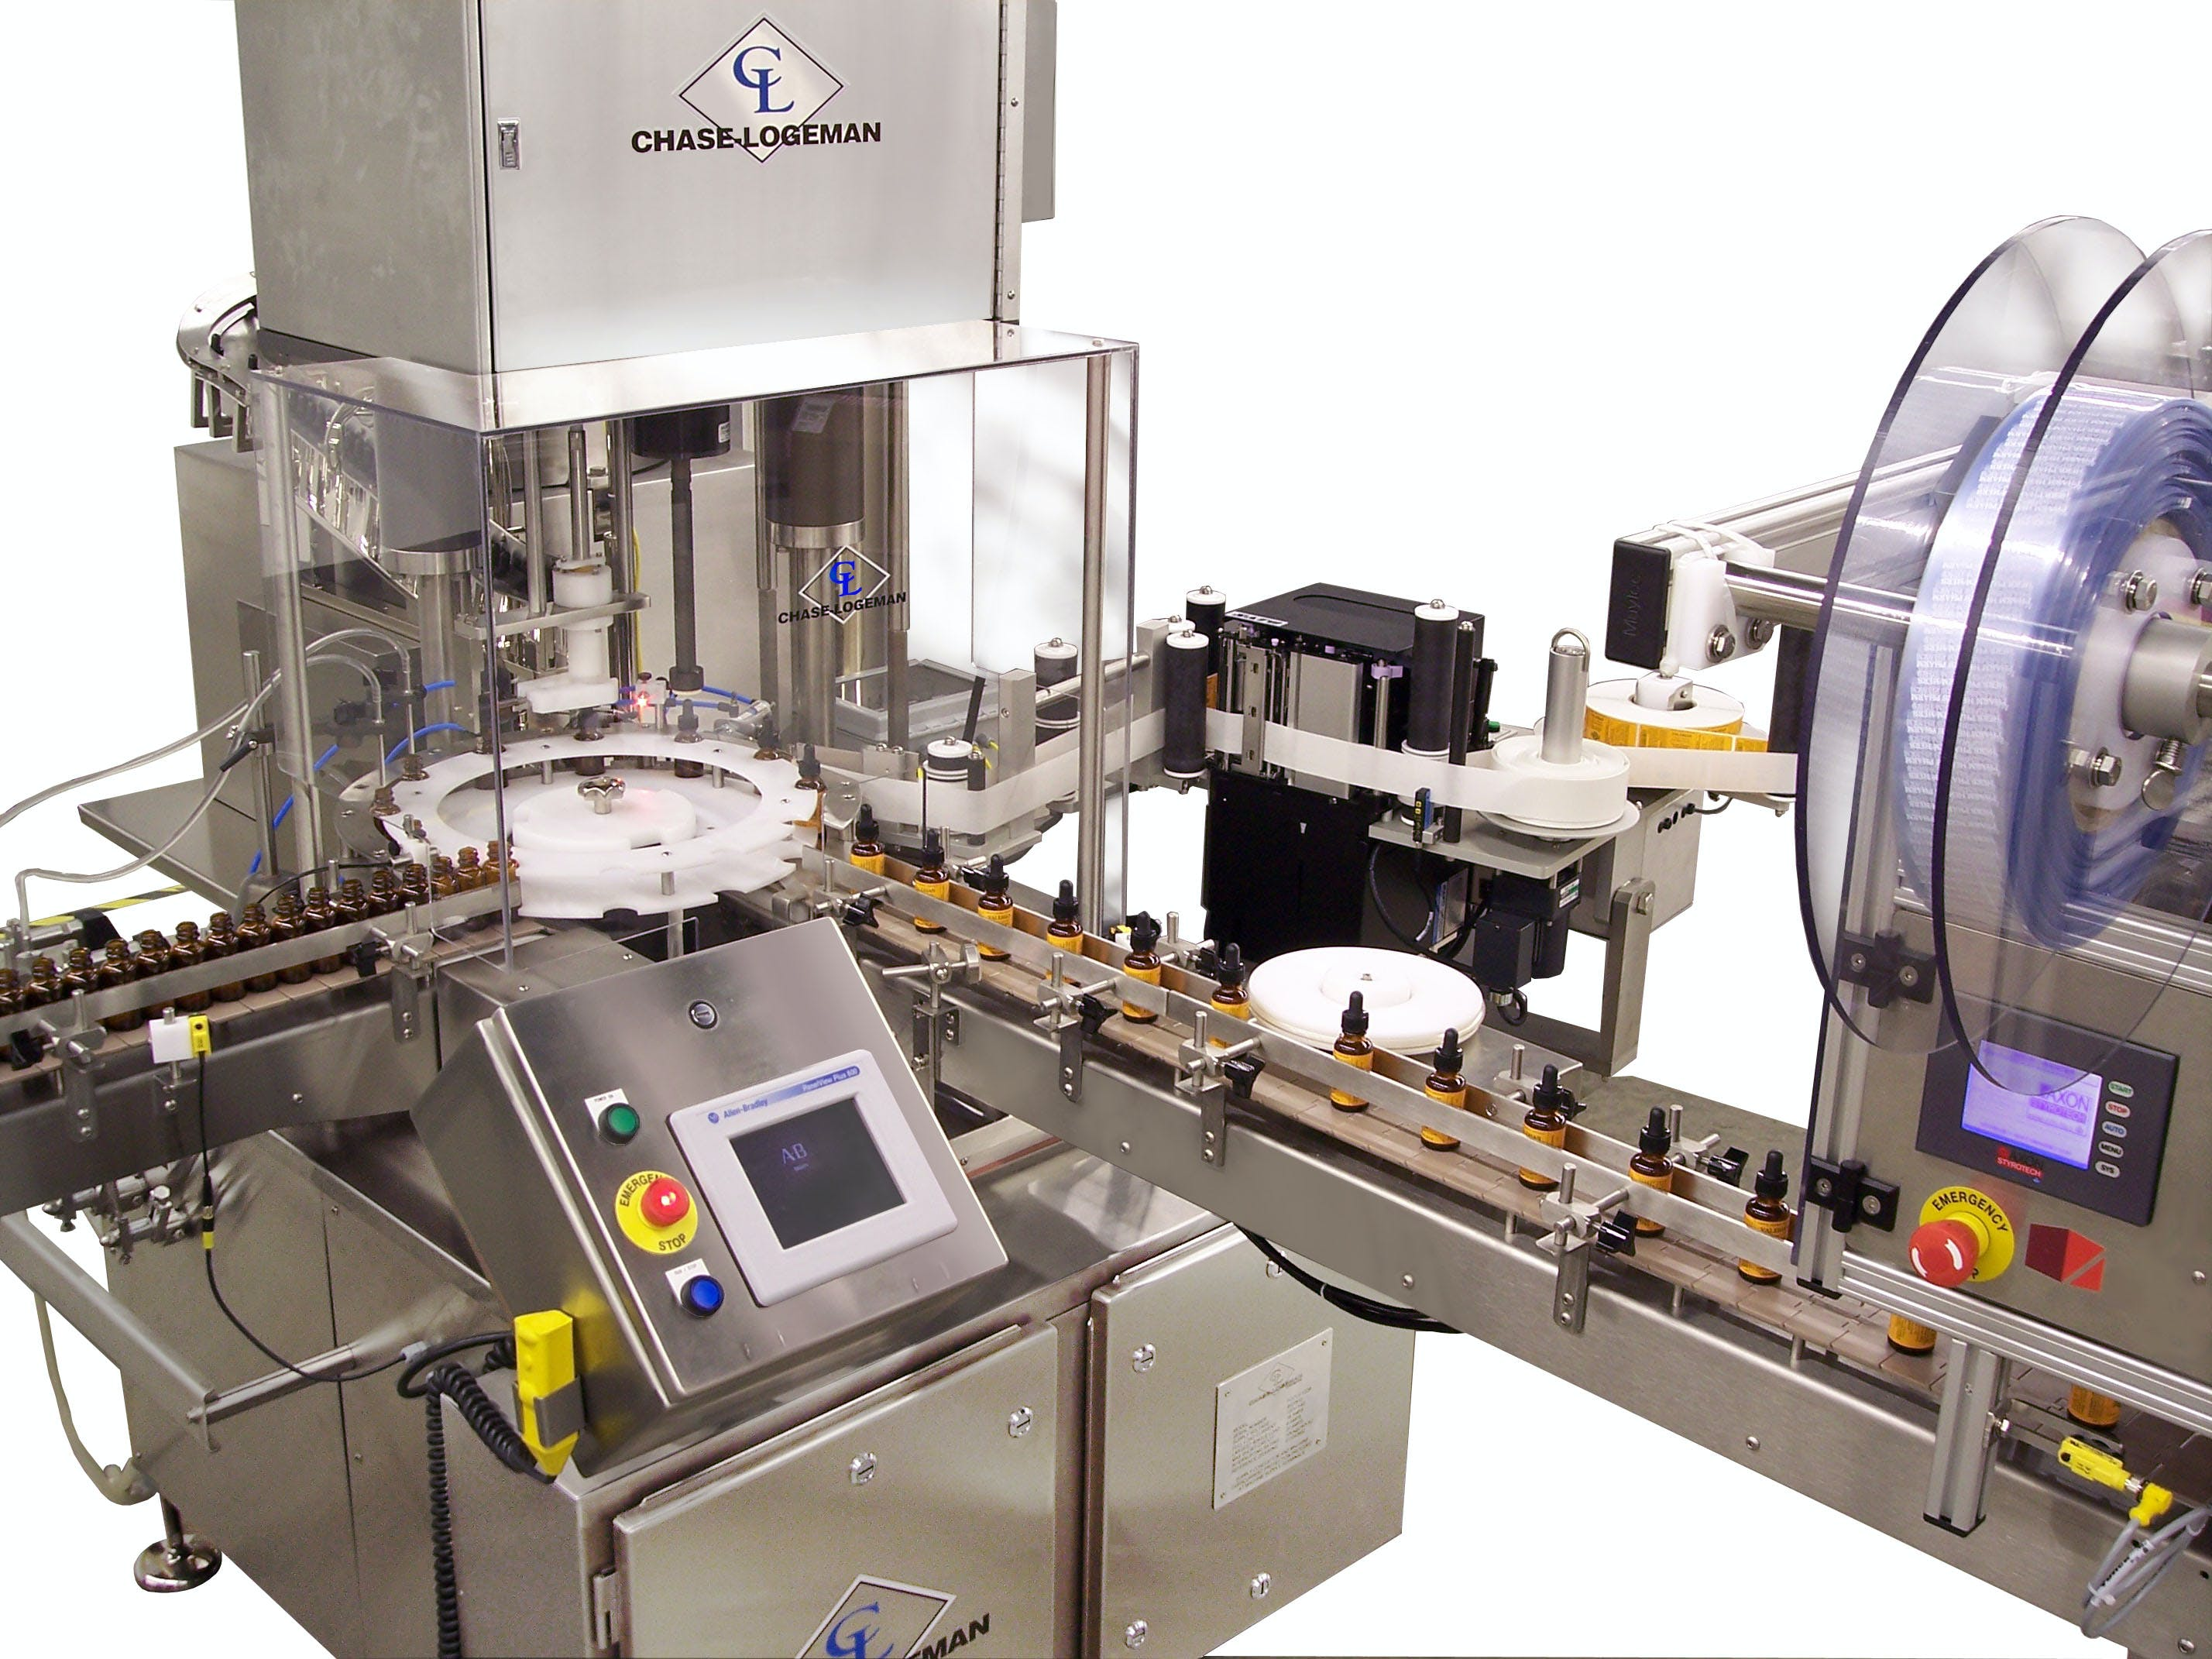 FCCL machine - Filling and Capping with pump sprayer or dropper tip - sold by Chase-Logeman Corporation